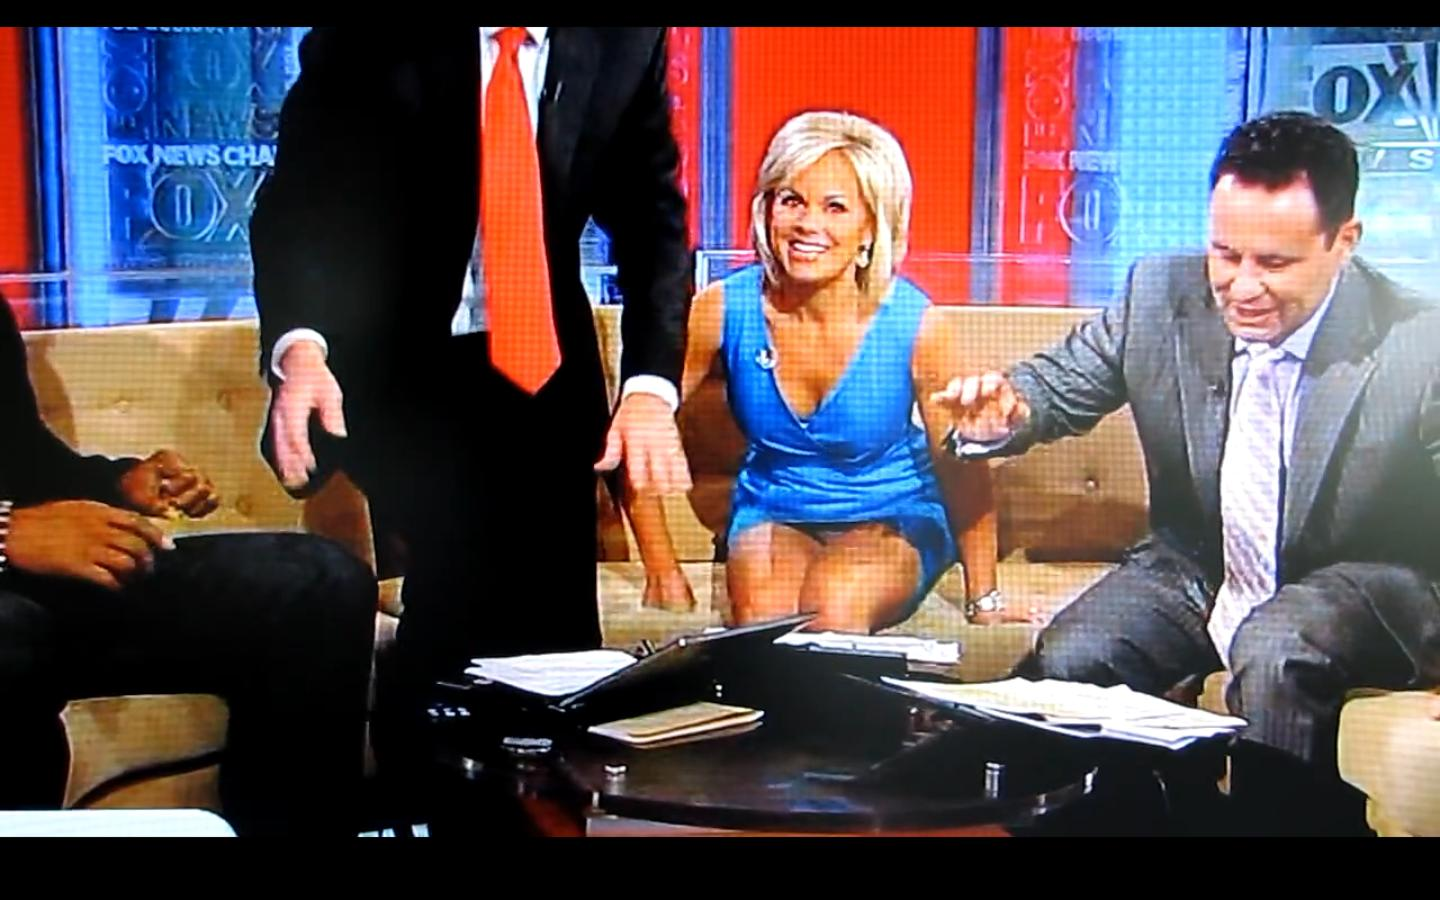 Infinitely fox news anchors upskirt useful